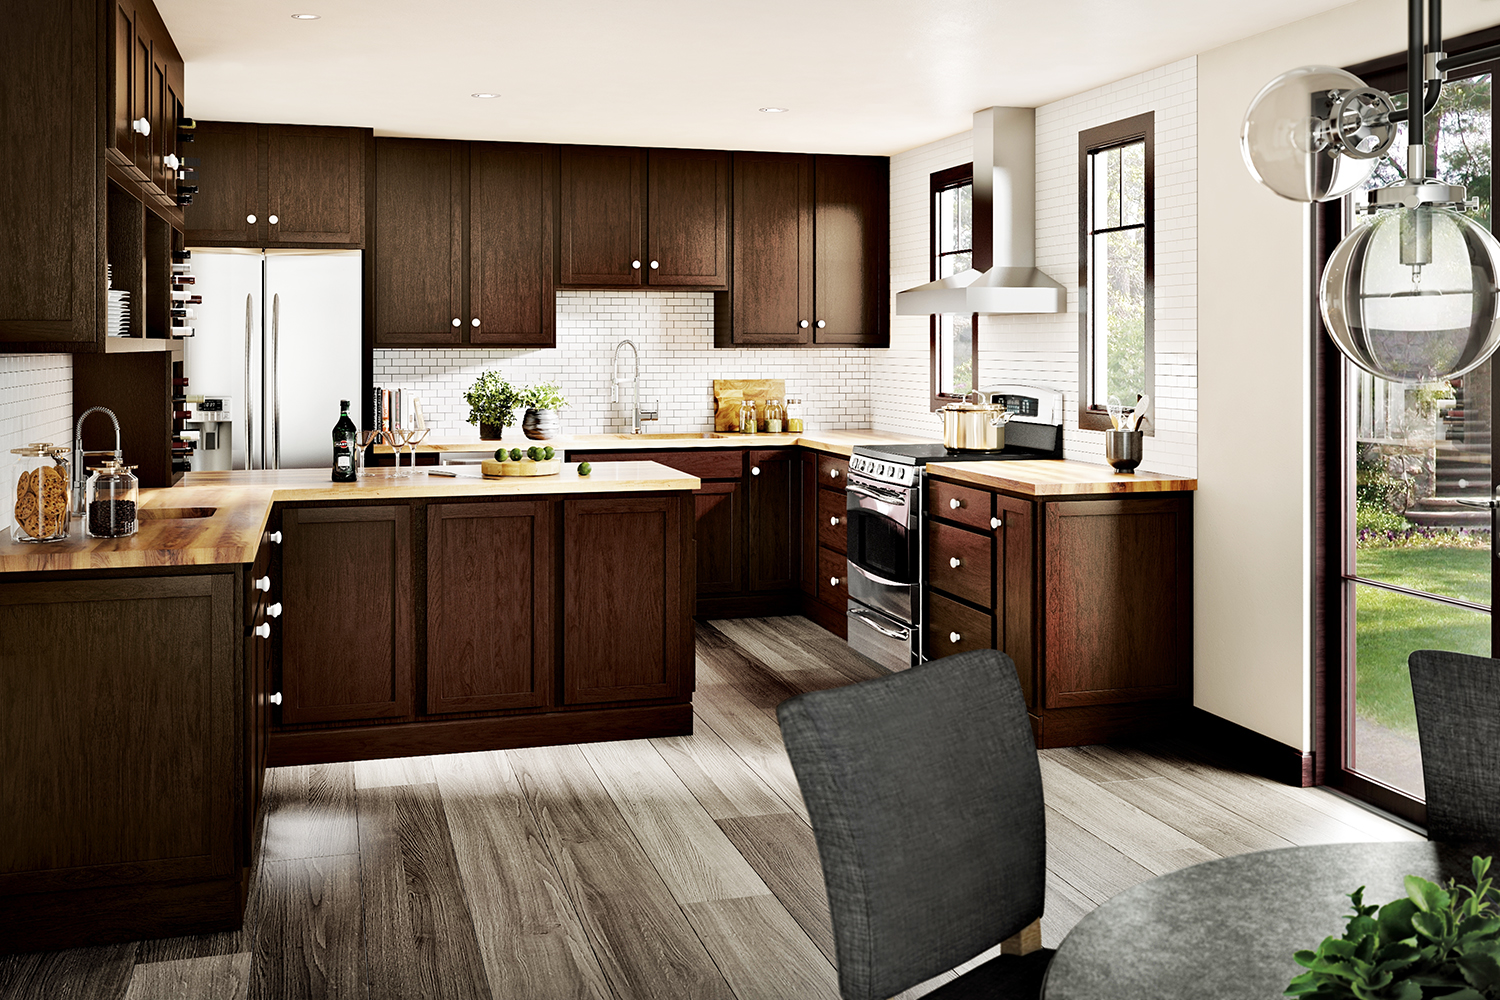 woodstar products - qualitycabinets